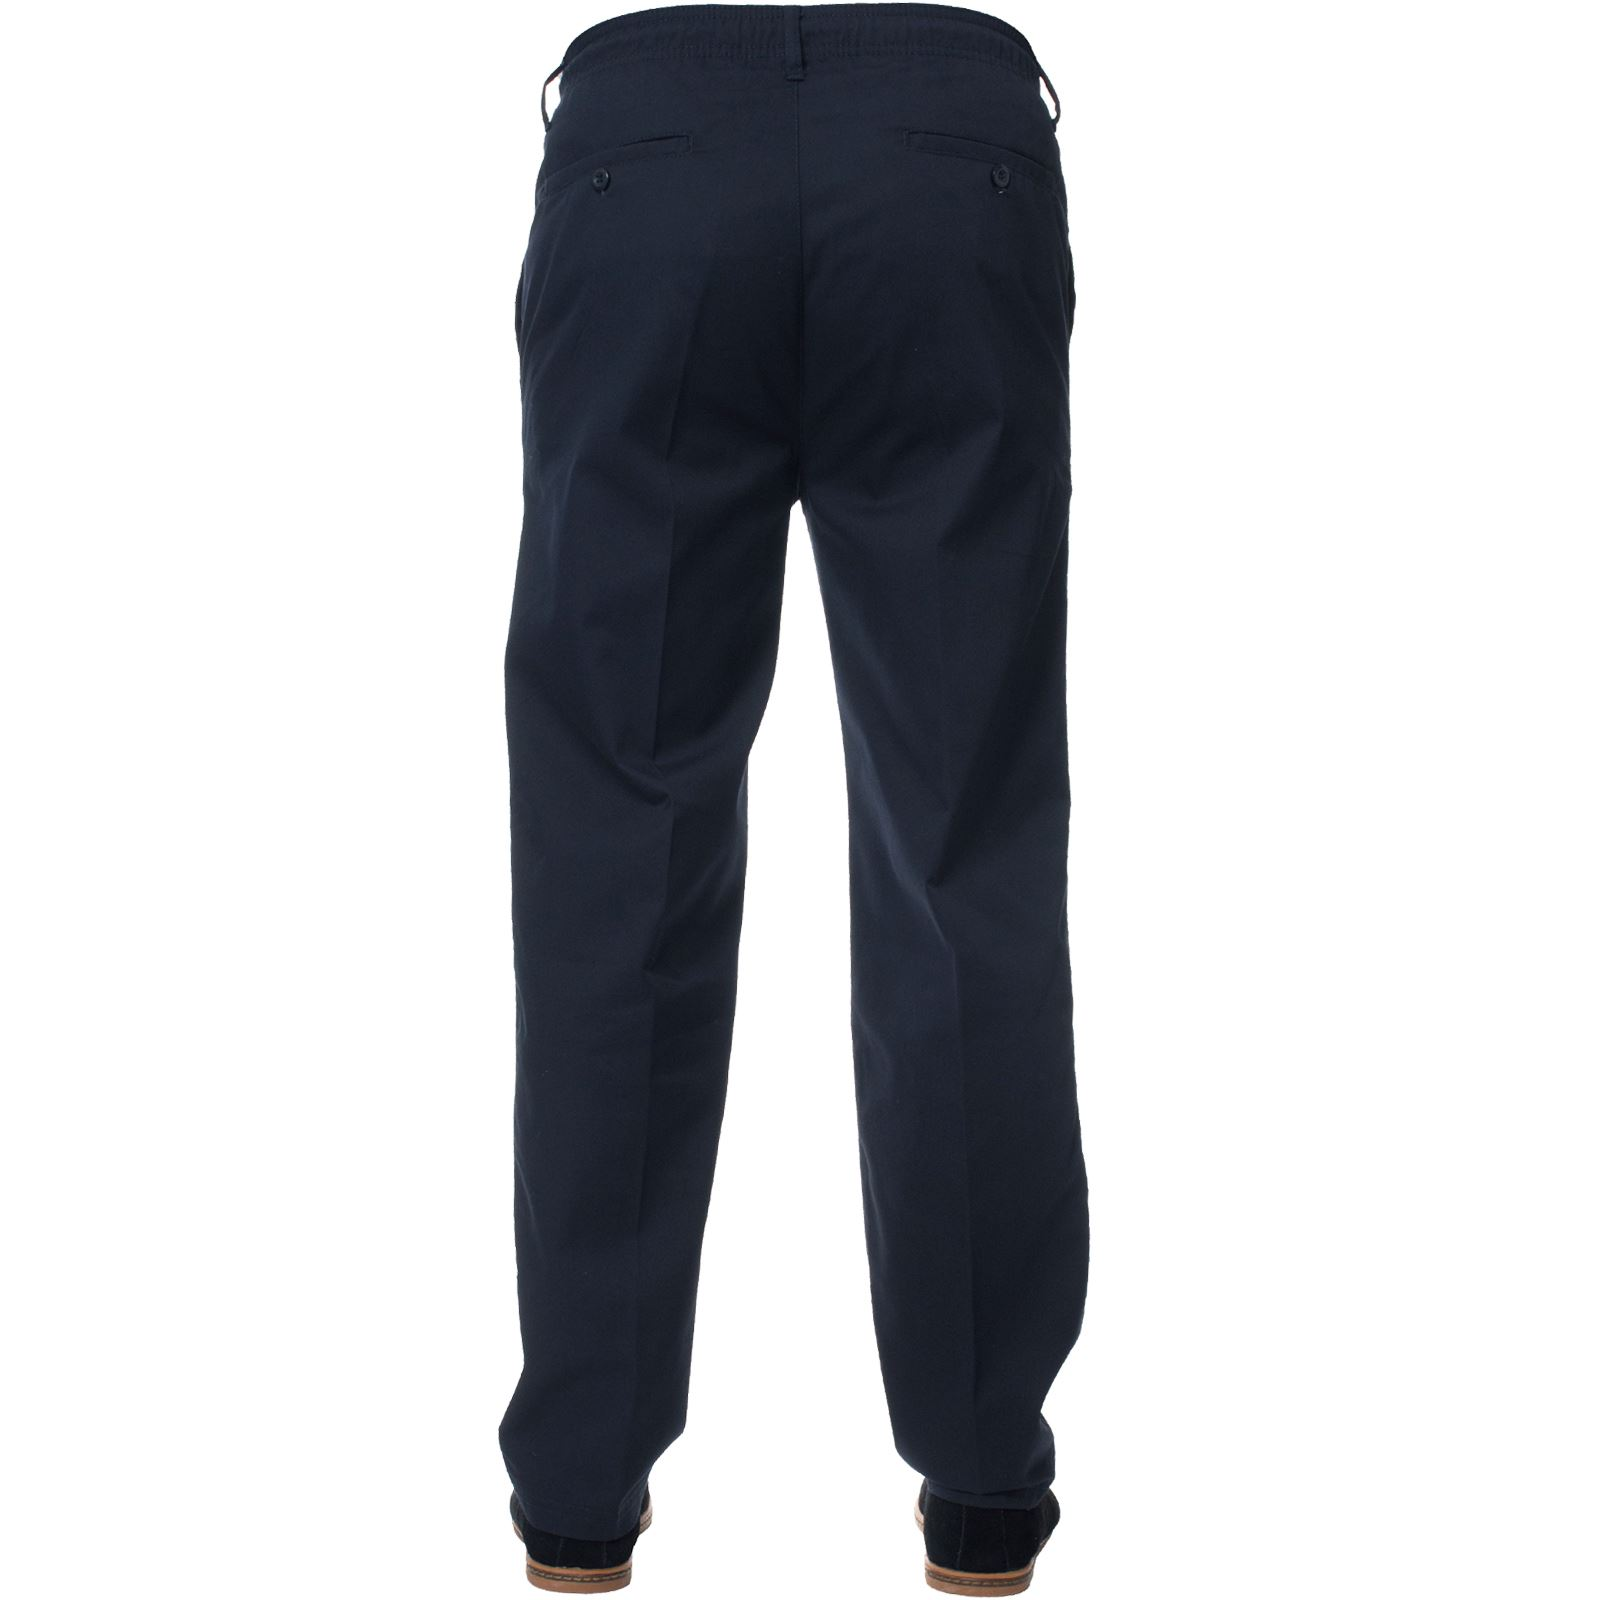 Mens-Rugby-Trousers-Kruze-Elasticated-Waist-Drawstring-Pants-Regular-King-Sizes thumbnail 9